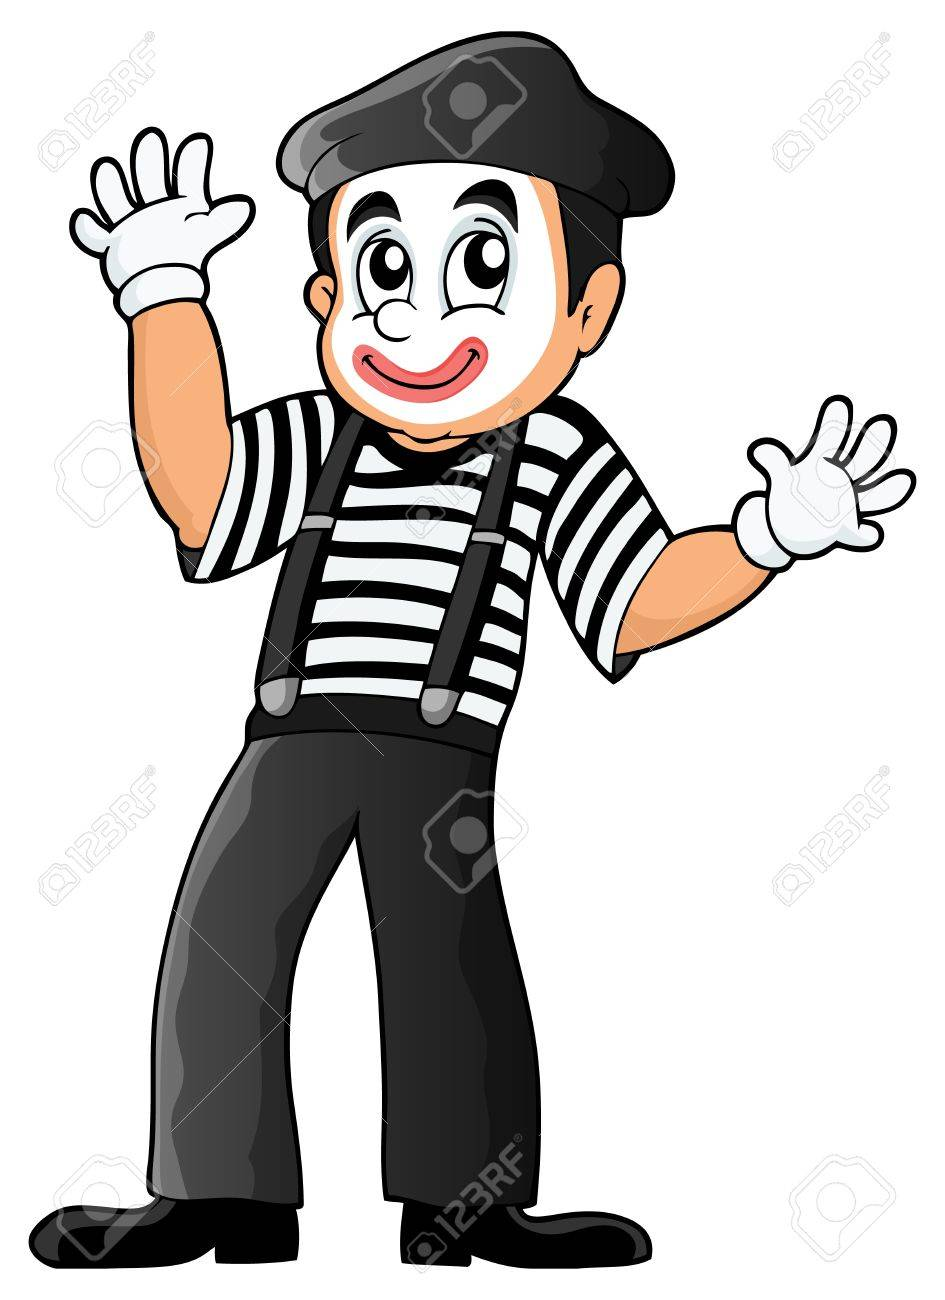 Mime theme image Stock Vector - 31384558